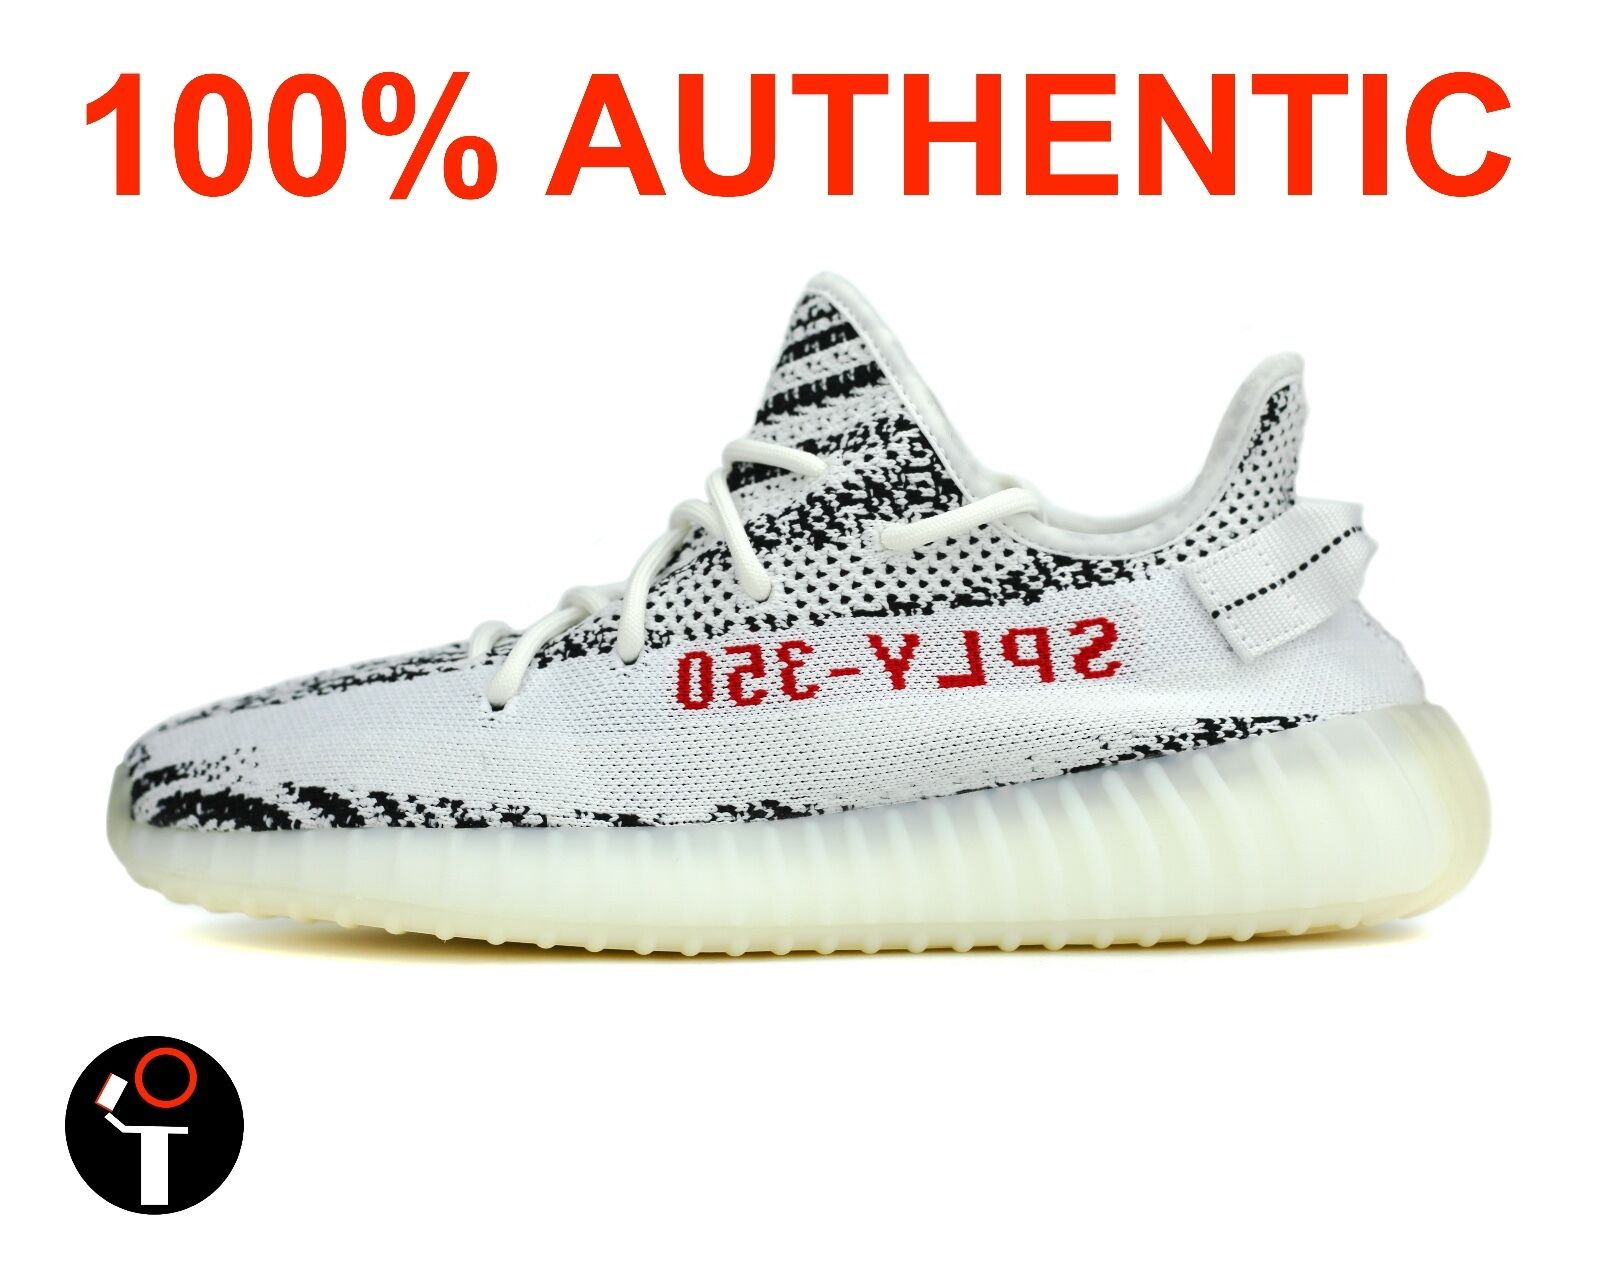 ADIDAS YEEZY BOOST 350 V2 4-14 WHITE BLACK RED ZEBRA CP9654. LEGIT!